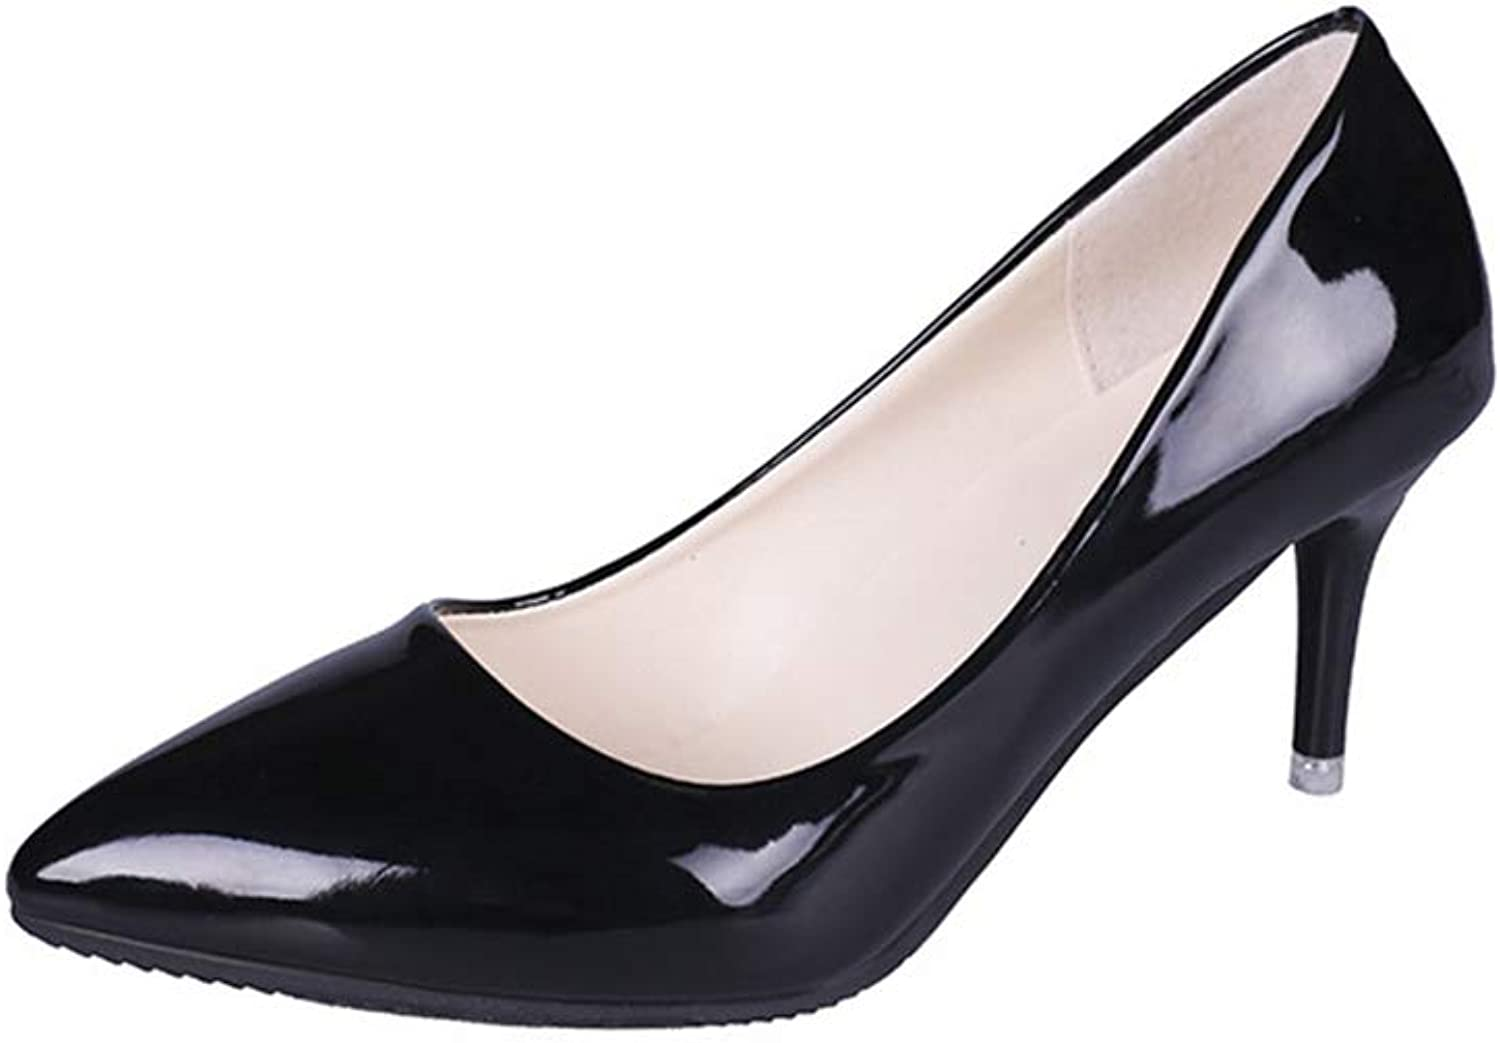 Sam Carle Women's Pump,Solid color Spring Fashion Classic Professional Work shoes